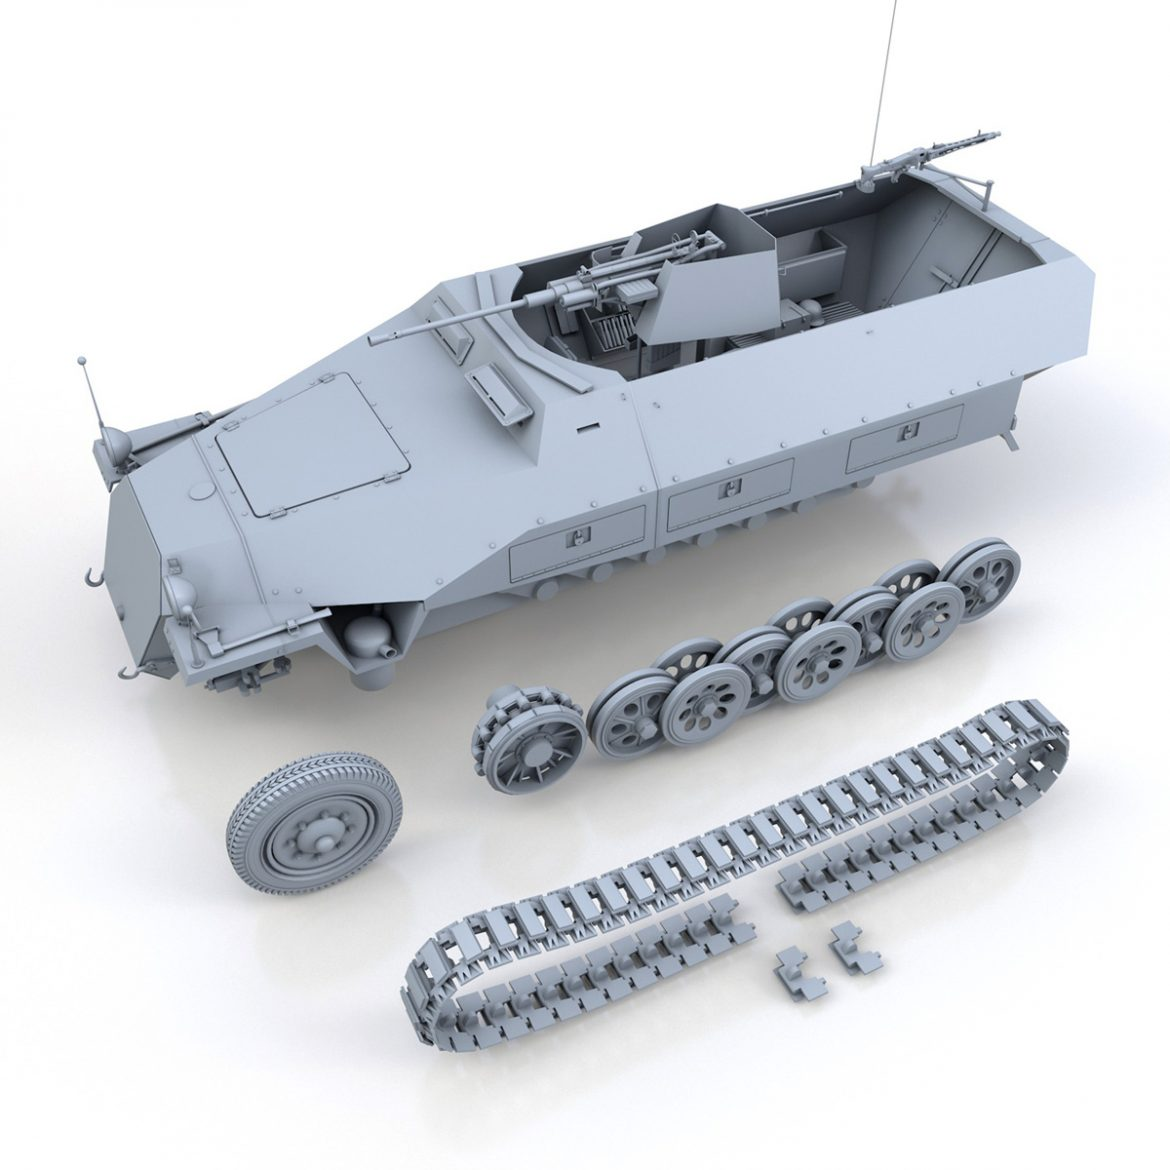 sd.kfz 251/17 ausf.d – anti-aircraft vehicle 3d model 3ds fbx c4d lwo obj 302959